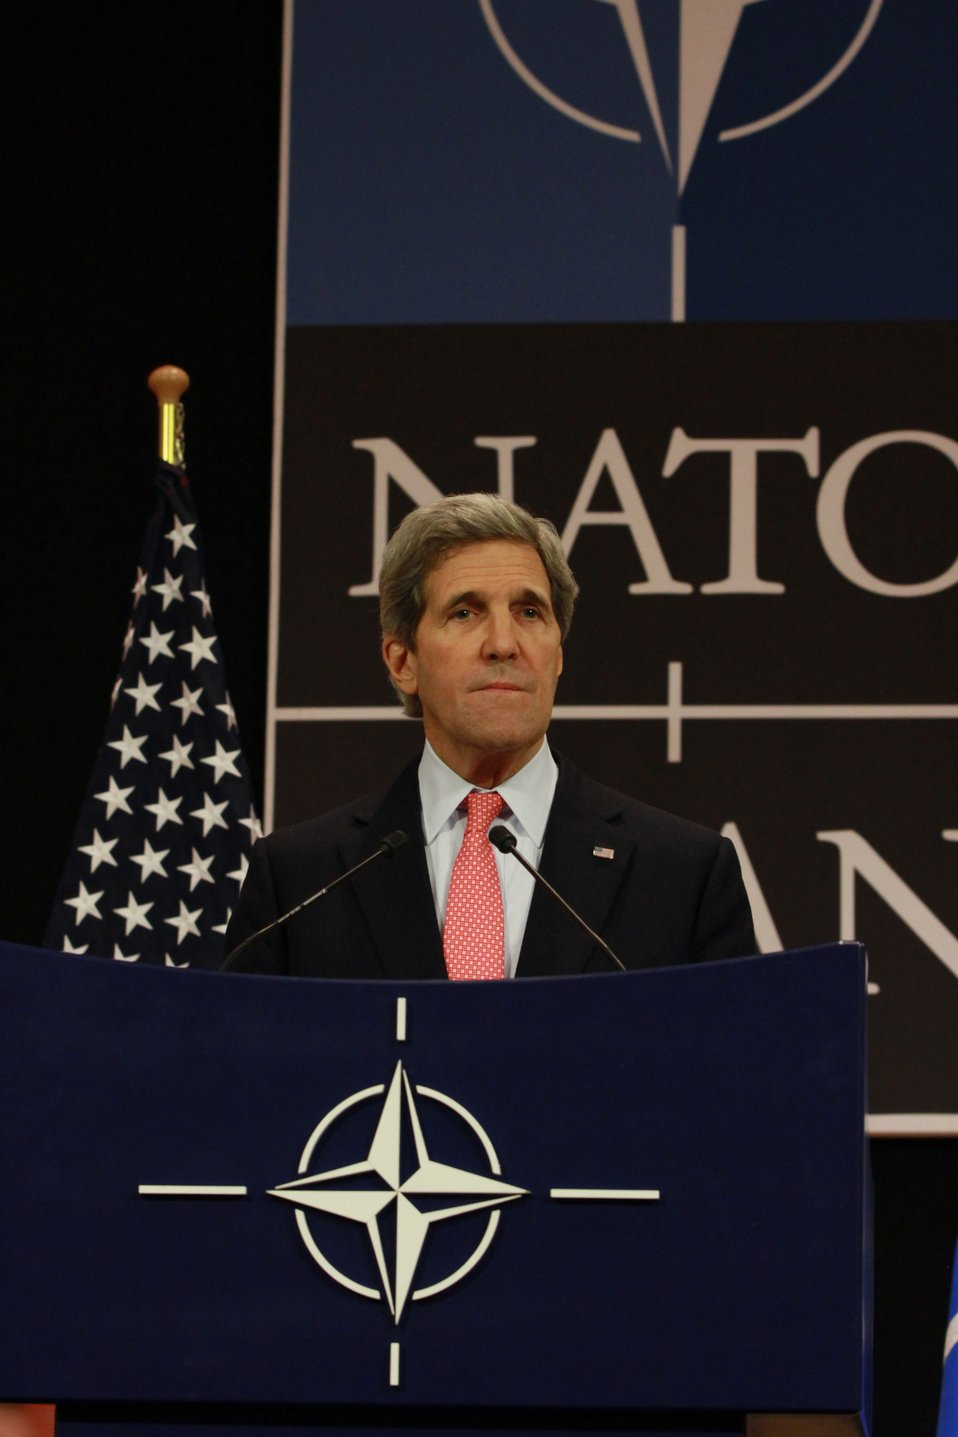 Secretary Kerry Takes Question From a Journalist at the NATO Foreign Ministerial